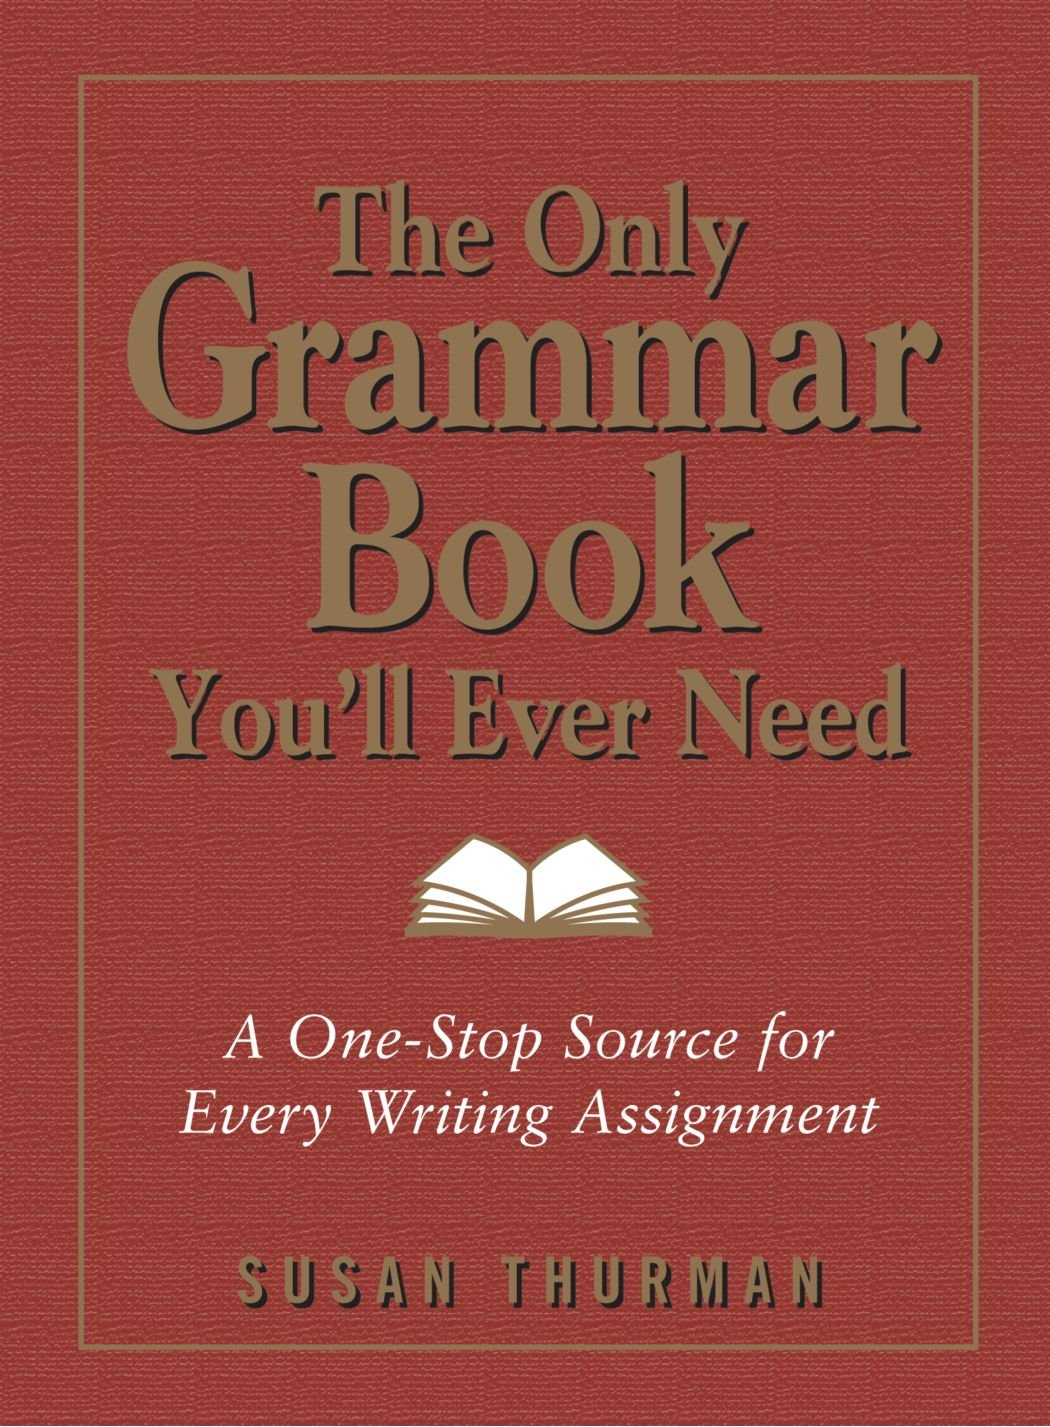 grammar book best seller